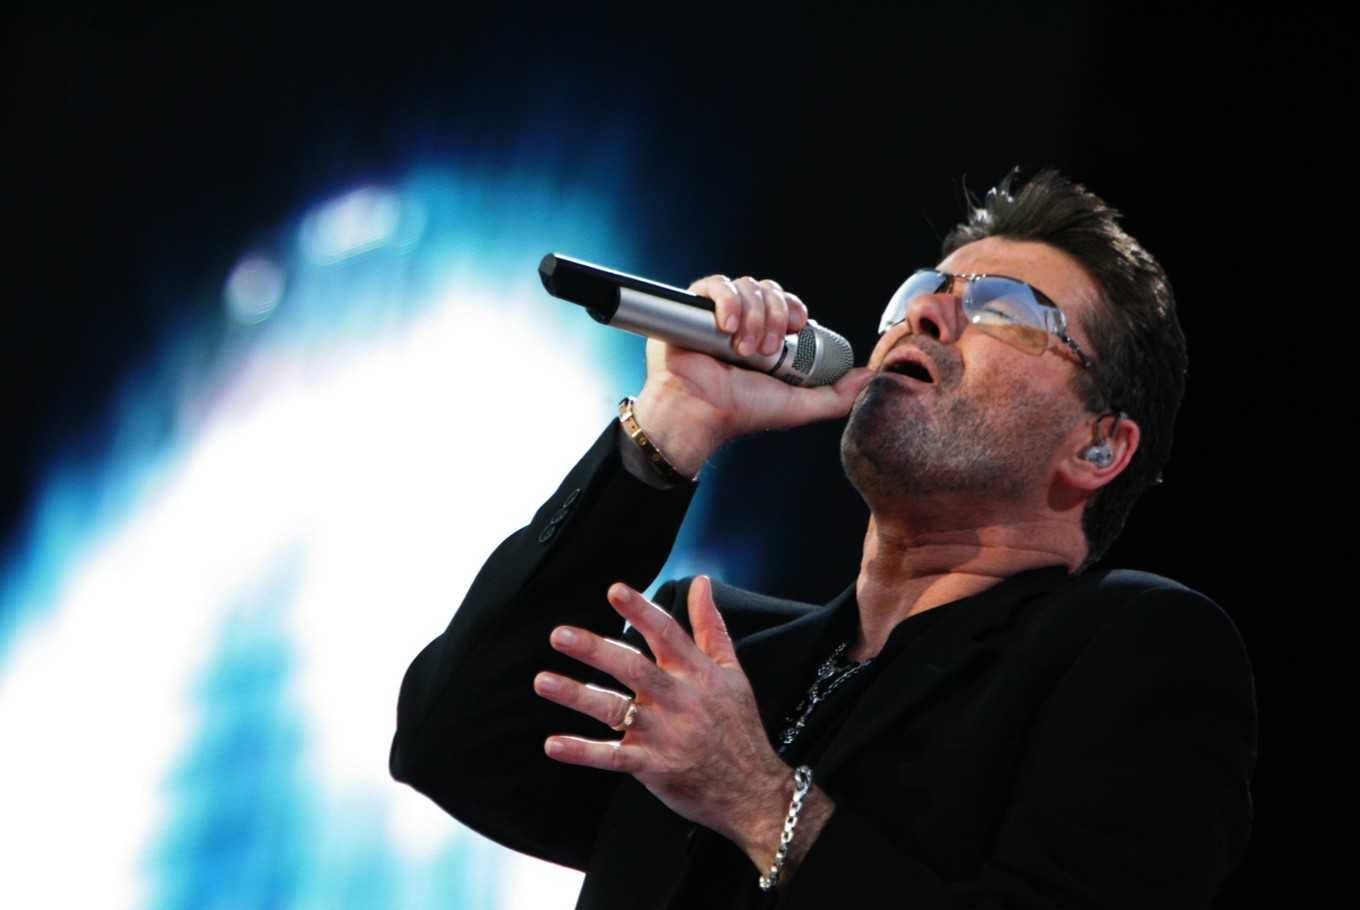 George Michael album tops UK charts again after 27 years